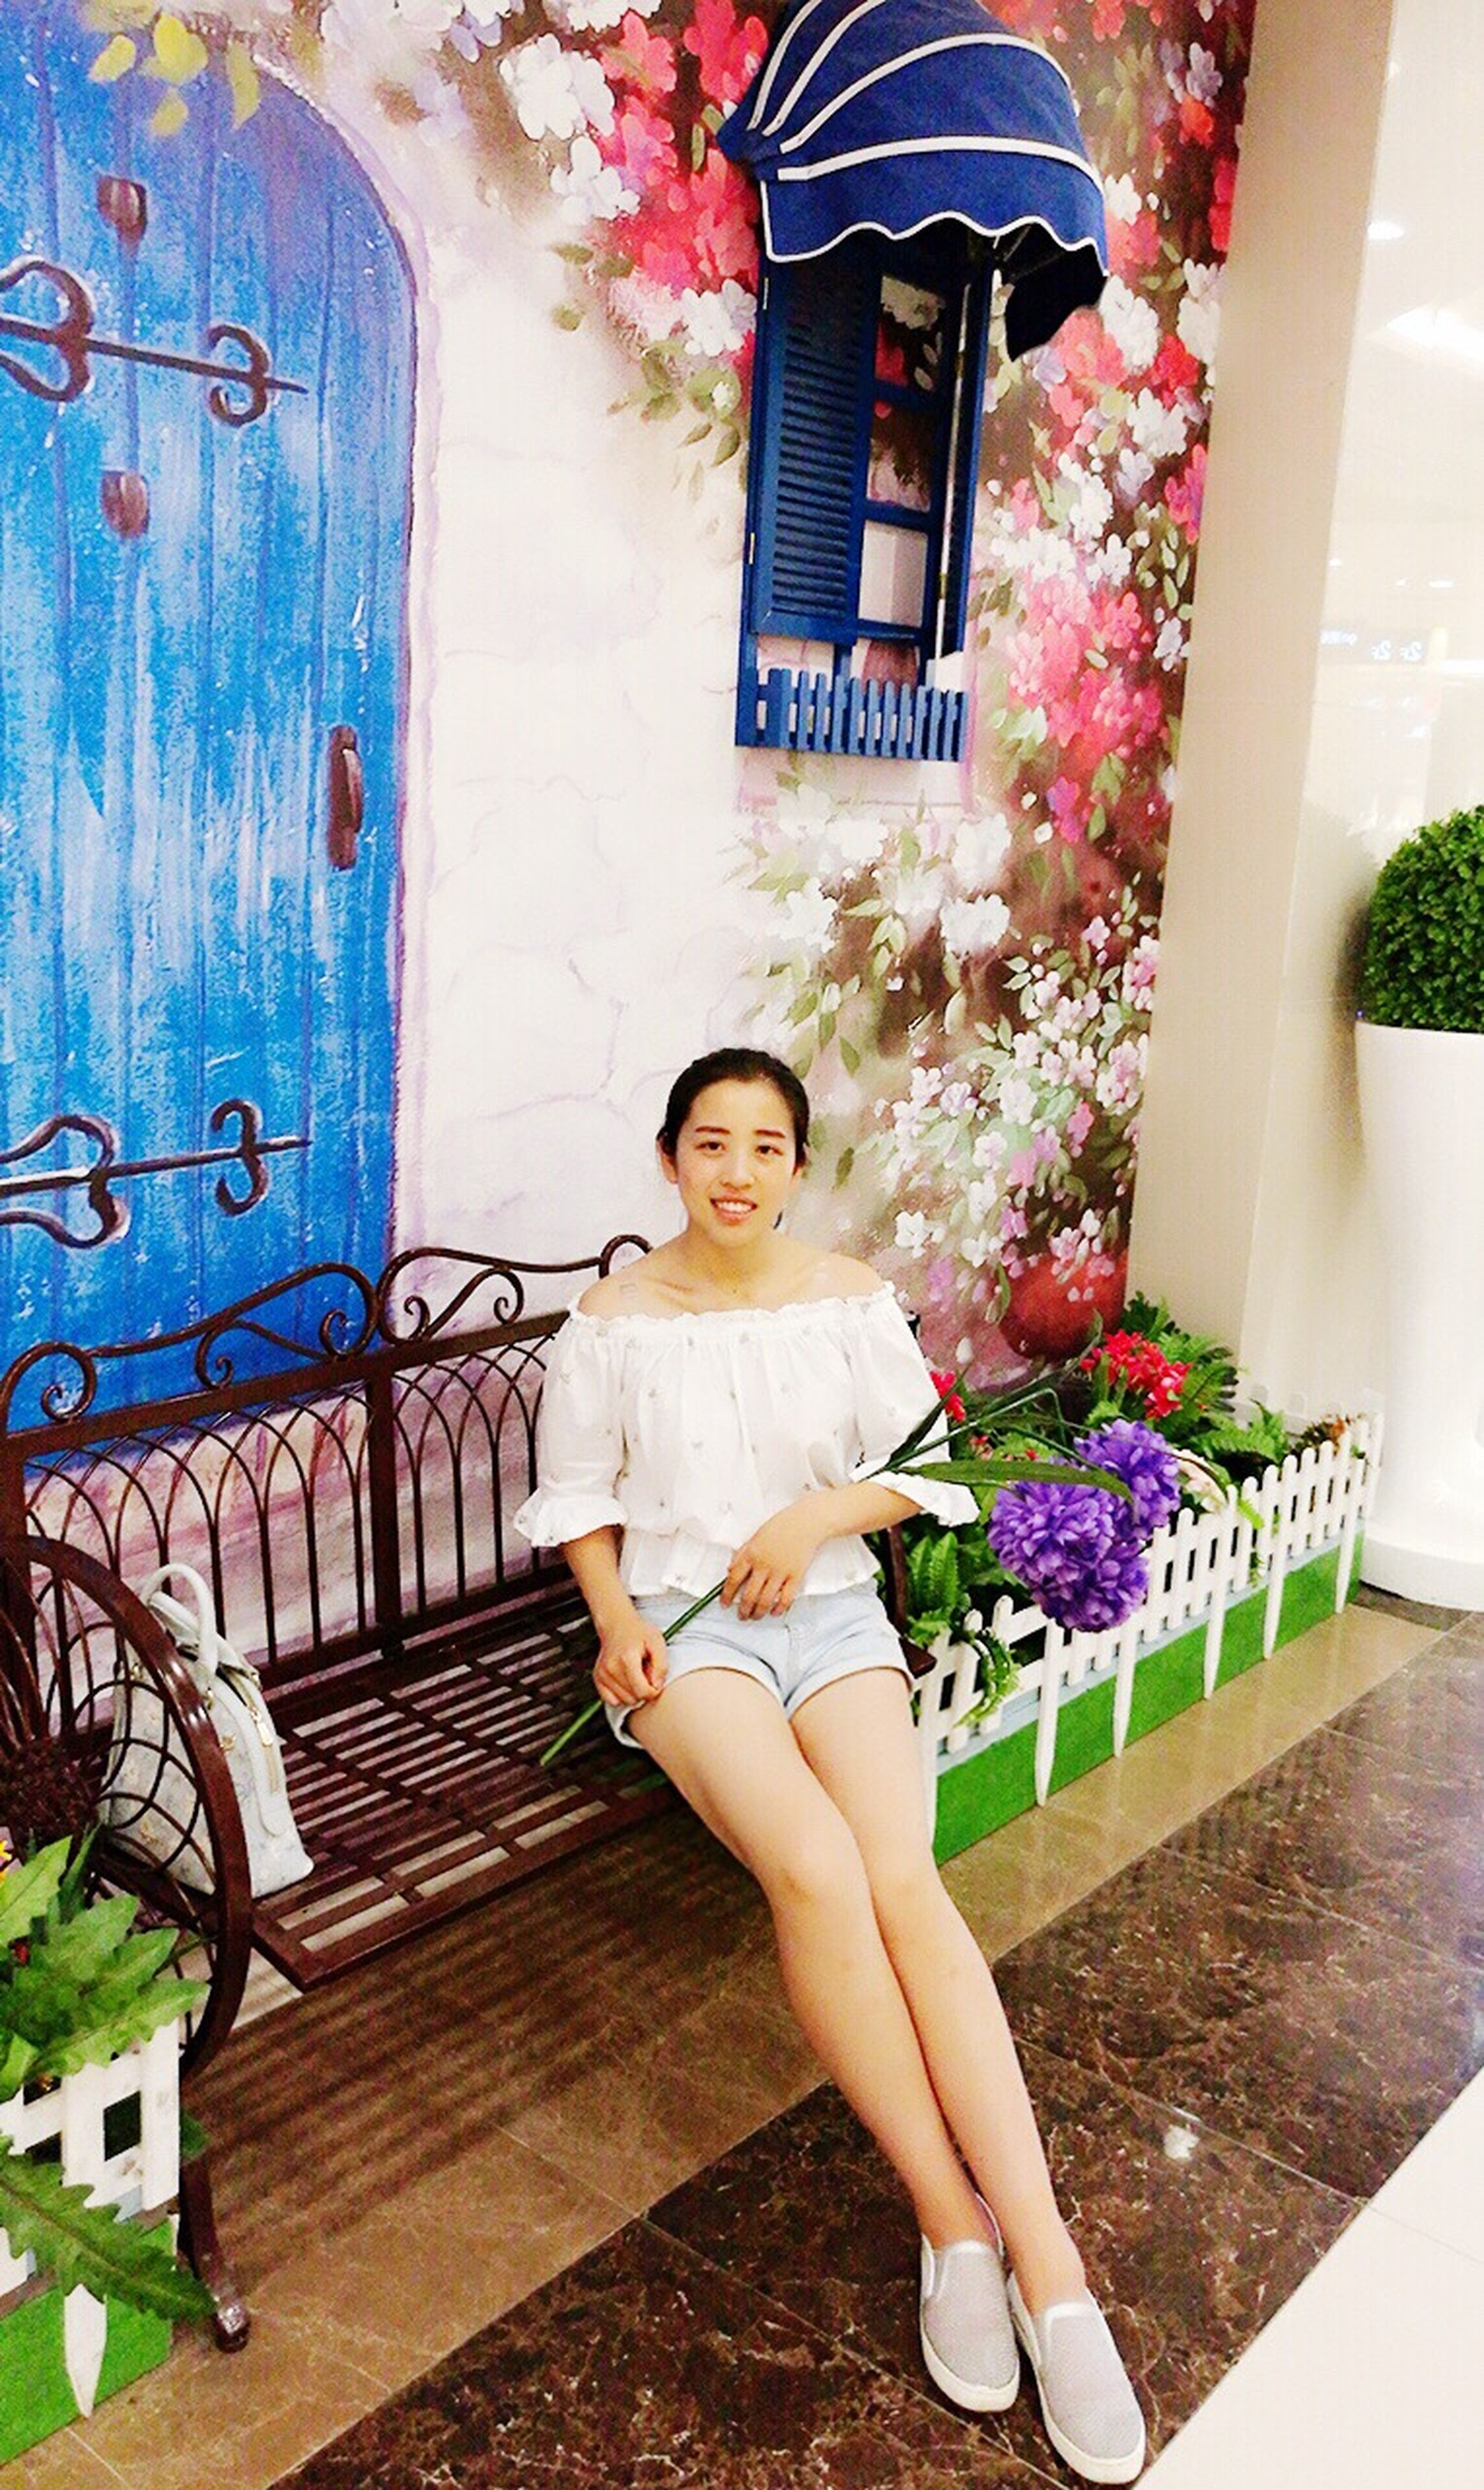 flower, built structure, person, casual clothing, full length, architecture, lifestyles, front view, potted plant, wall - building feature, house, plant, looking at camera, door, leisure activity, standing, building exterior, childhood